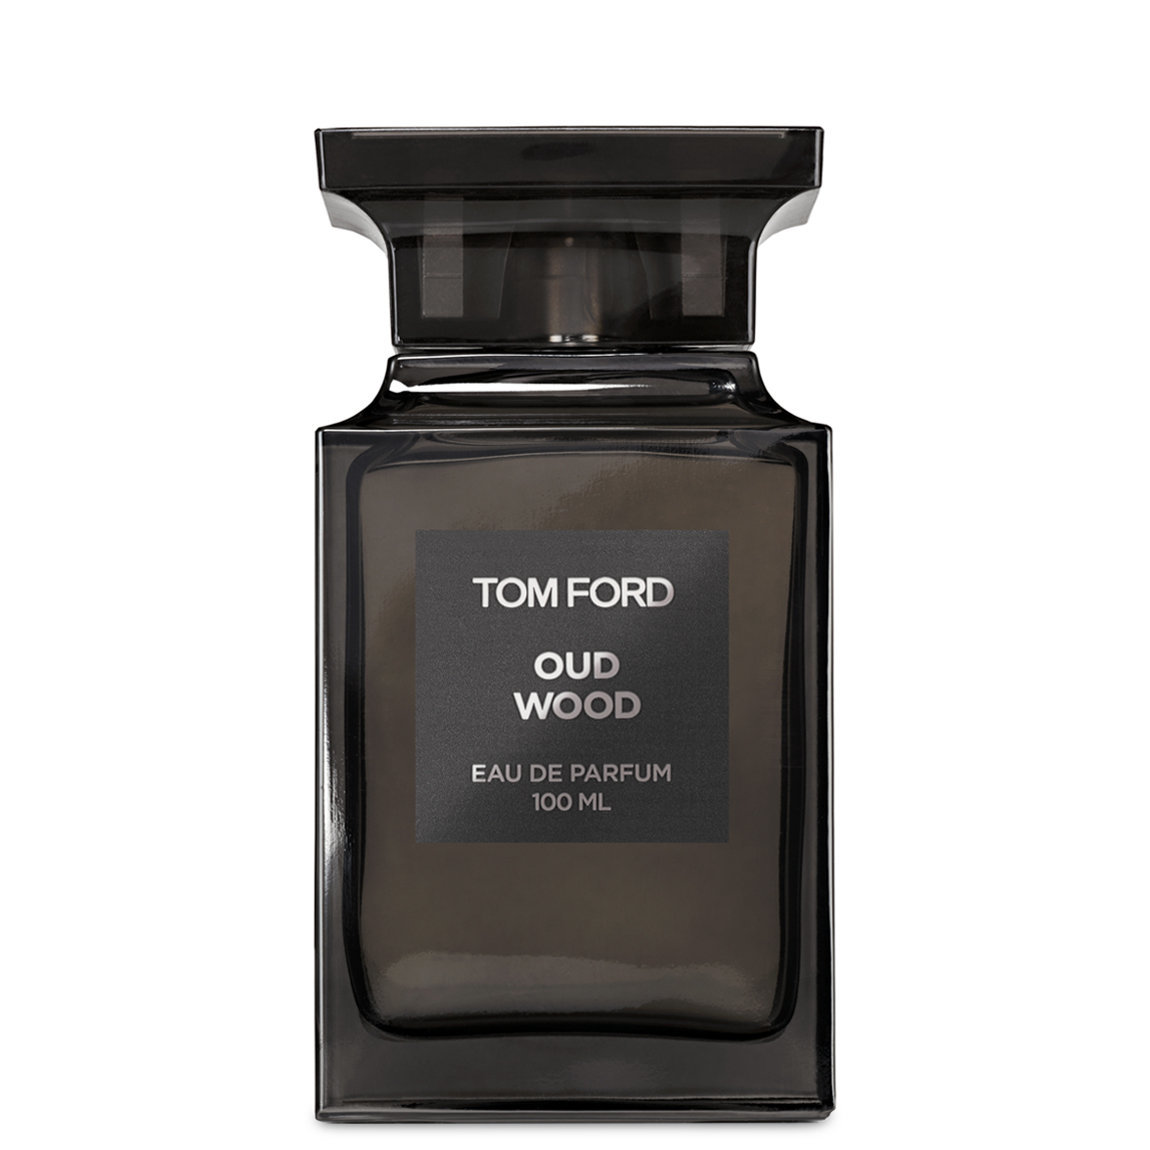 TOM FORD Oud Wood 100 ml alternative view 1 - product swatch.